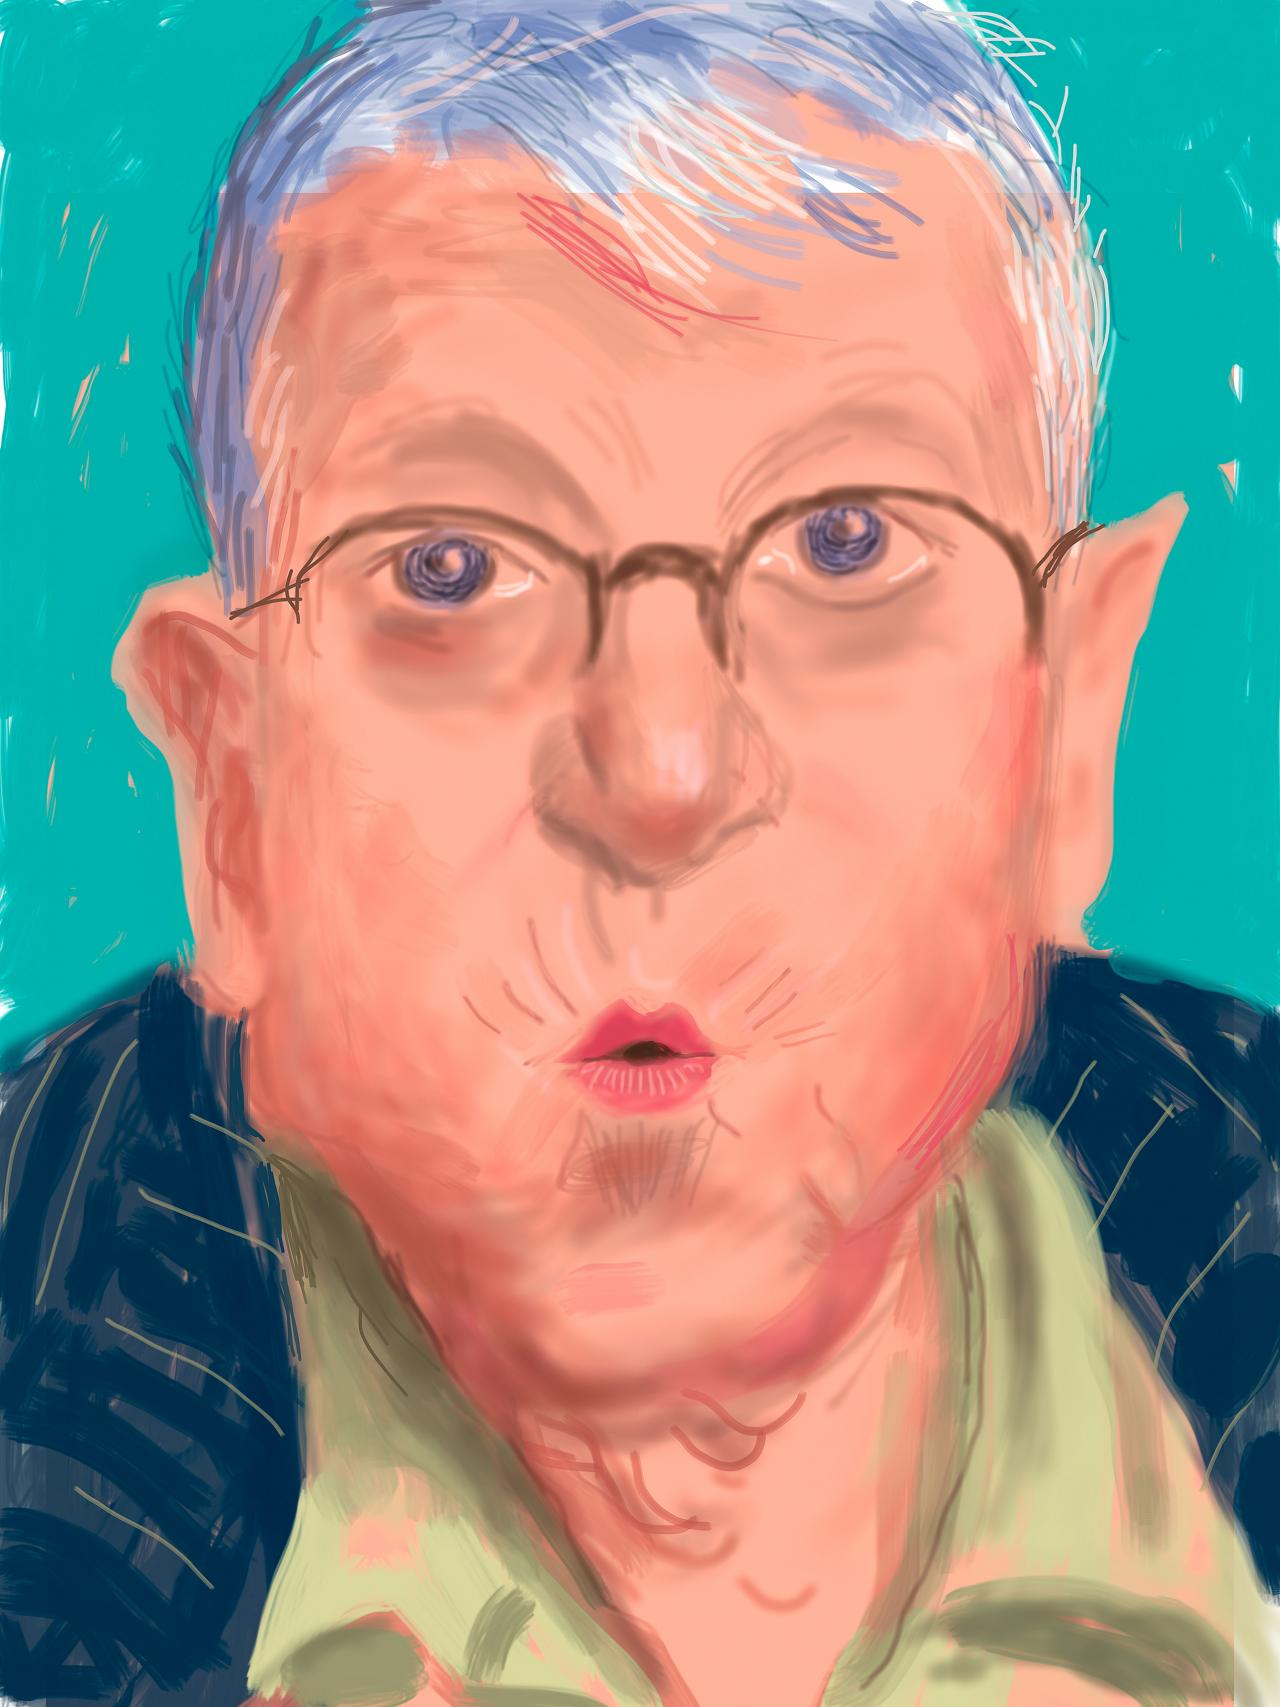 David Hockney<br/> English 1937–<br/> Self-portrait, 25 March 2012, No. 2 (1233)<br/> iPad drawing<br/> Collection of the artist<br/> © David Hockney